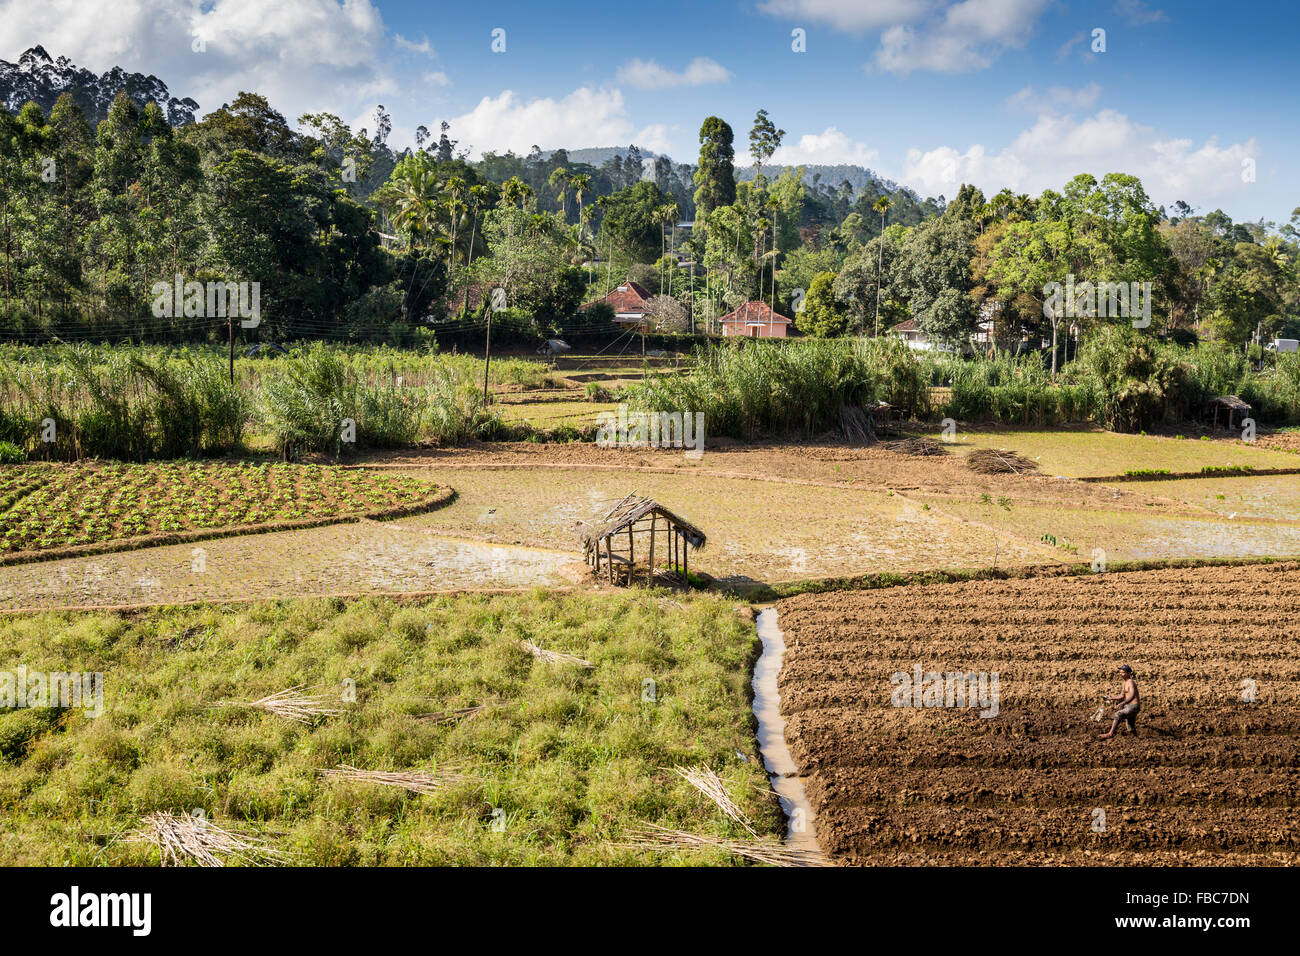 subsistence farming how to grow your own food and nothing more